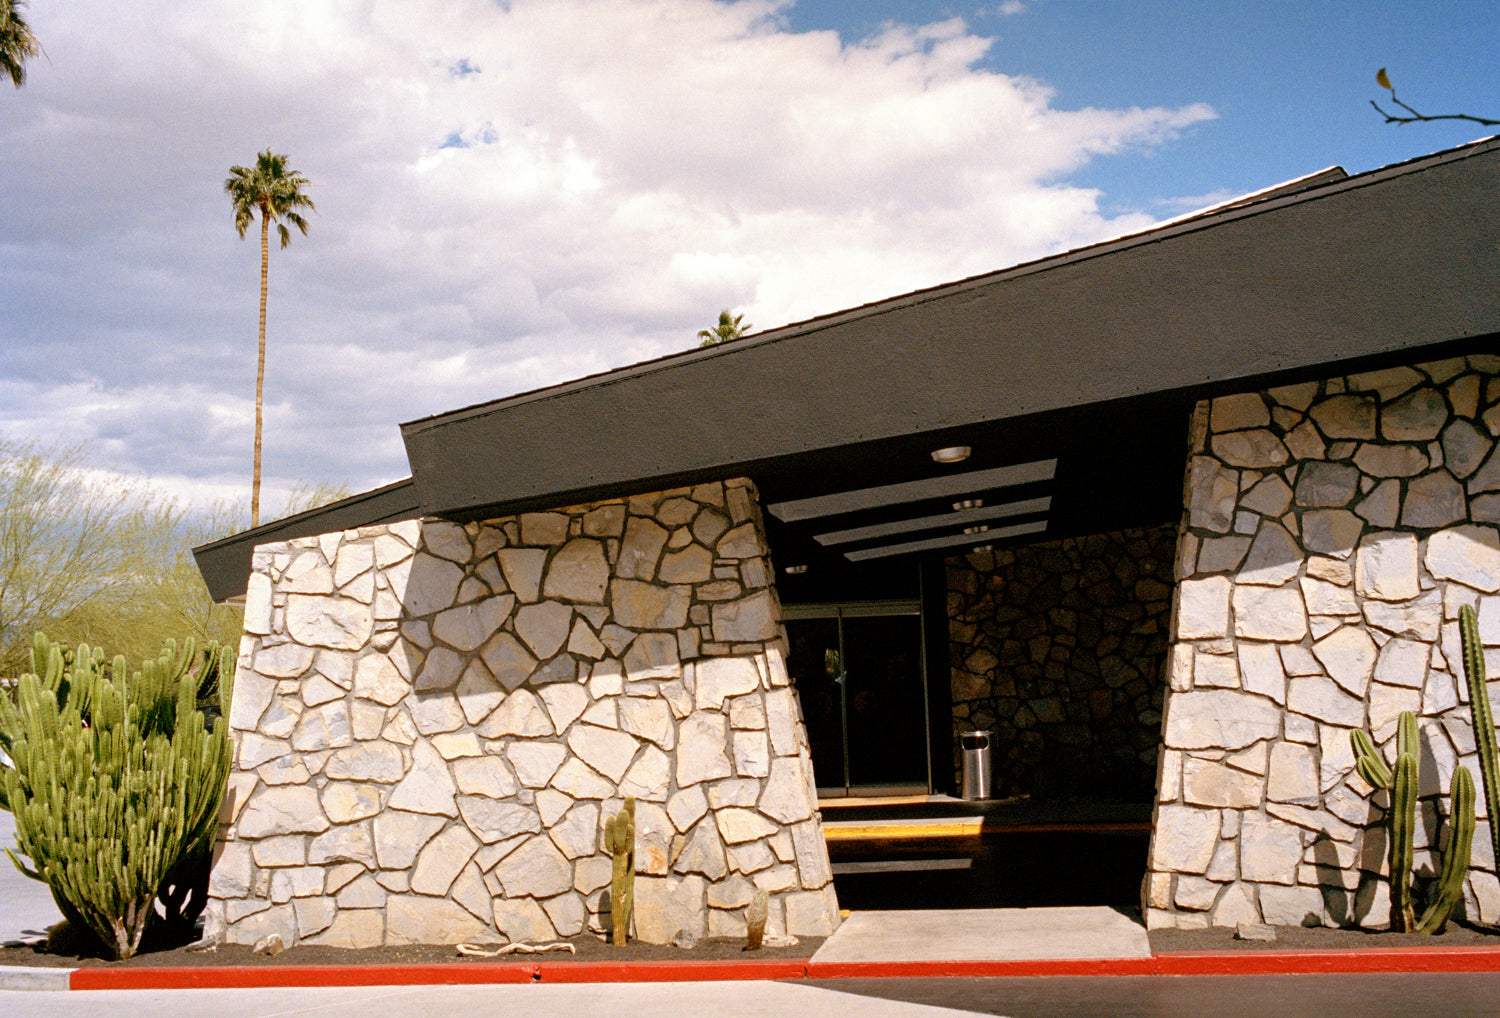 A photography of the Ace Hotel stone wall in Palm Springs. A rmid century stone building.